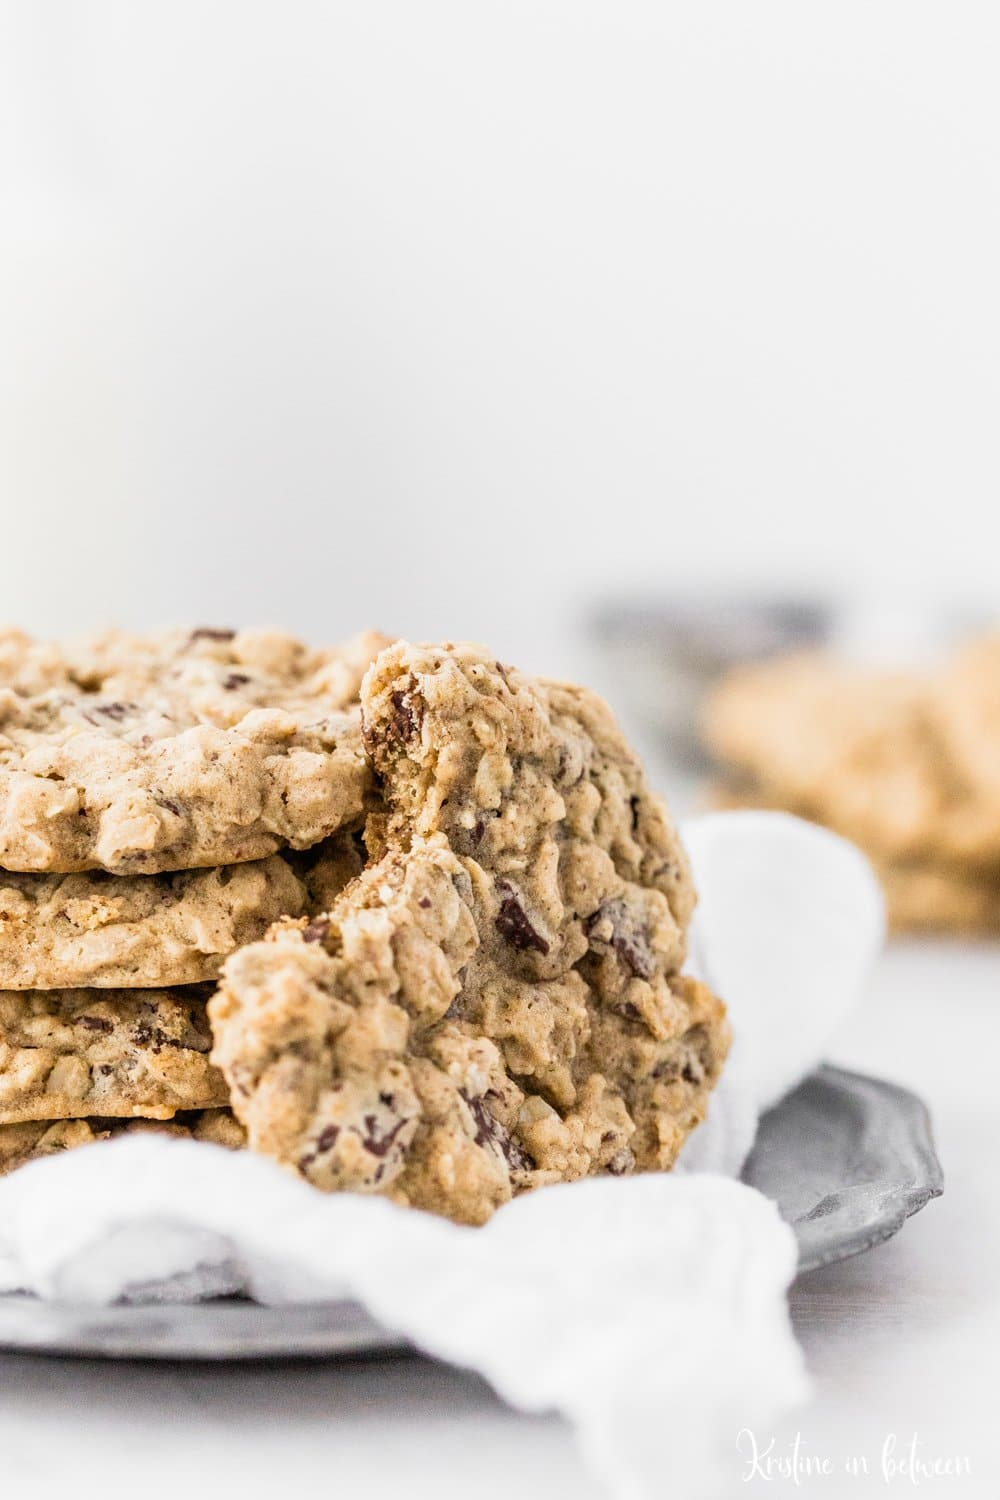 The very best traditional thick and chewy oatmeal dark chocolate chunk cookies!